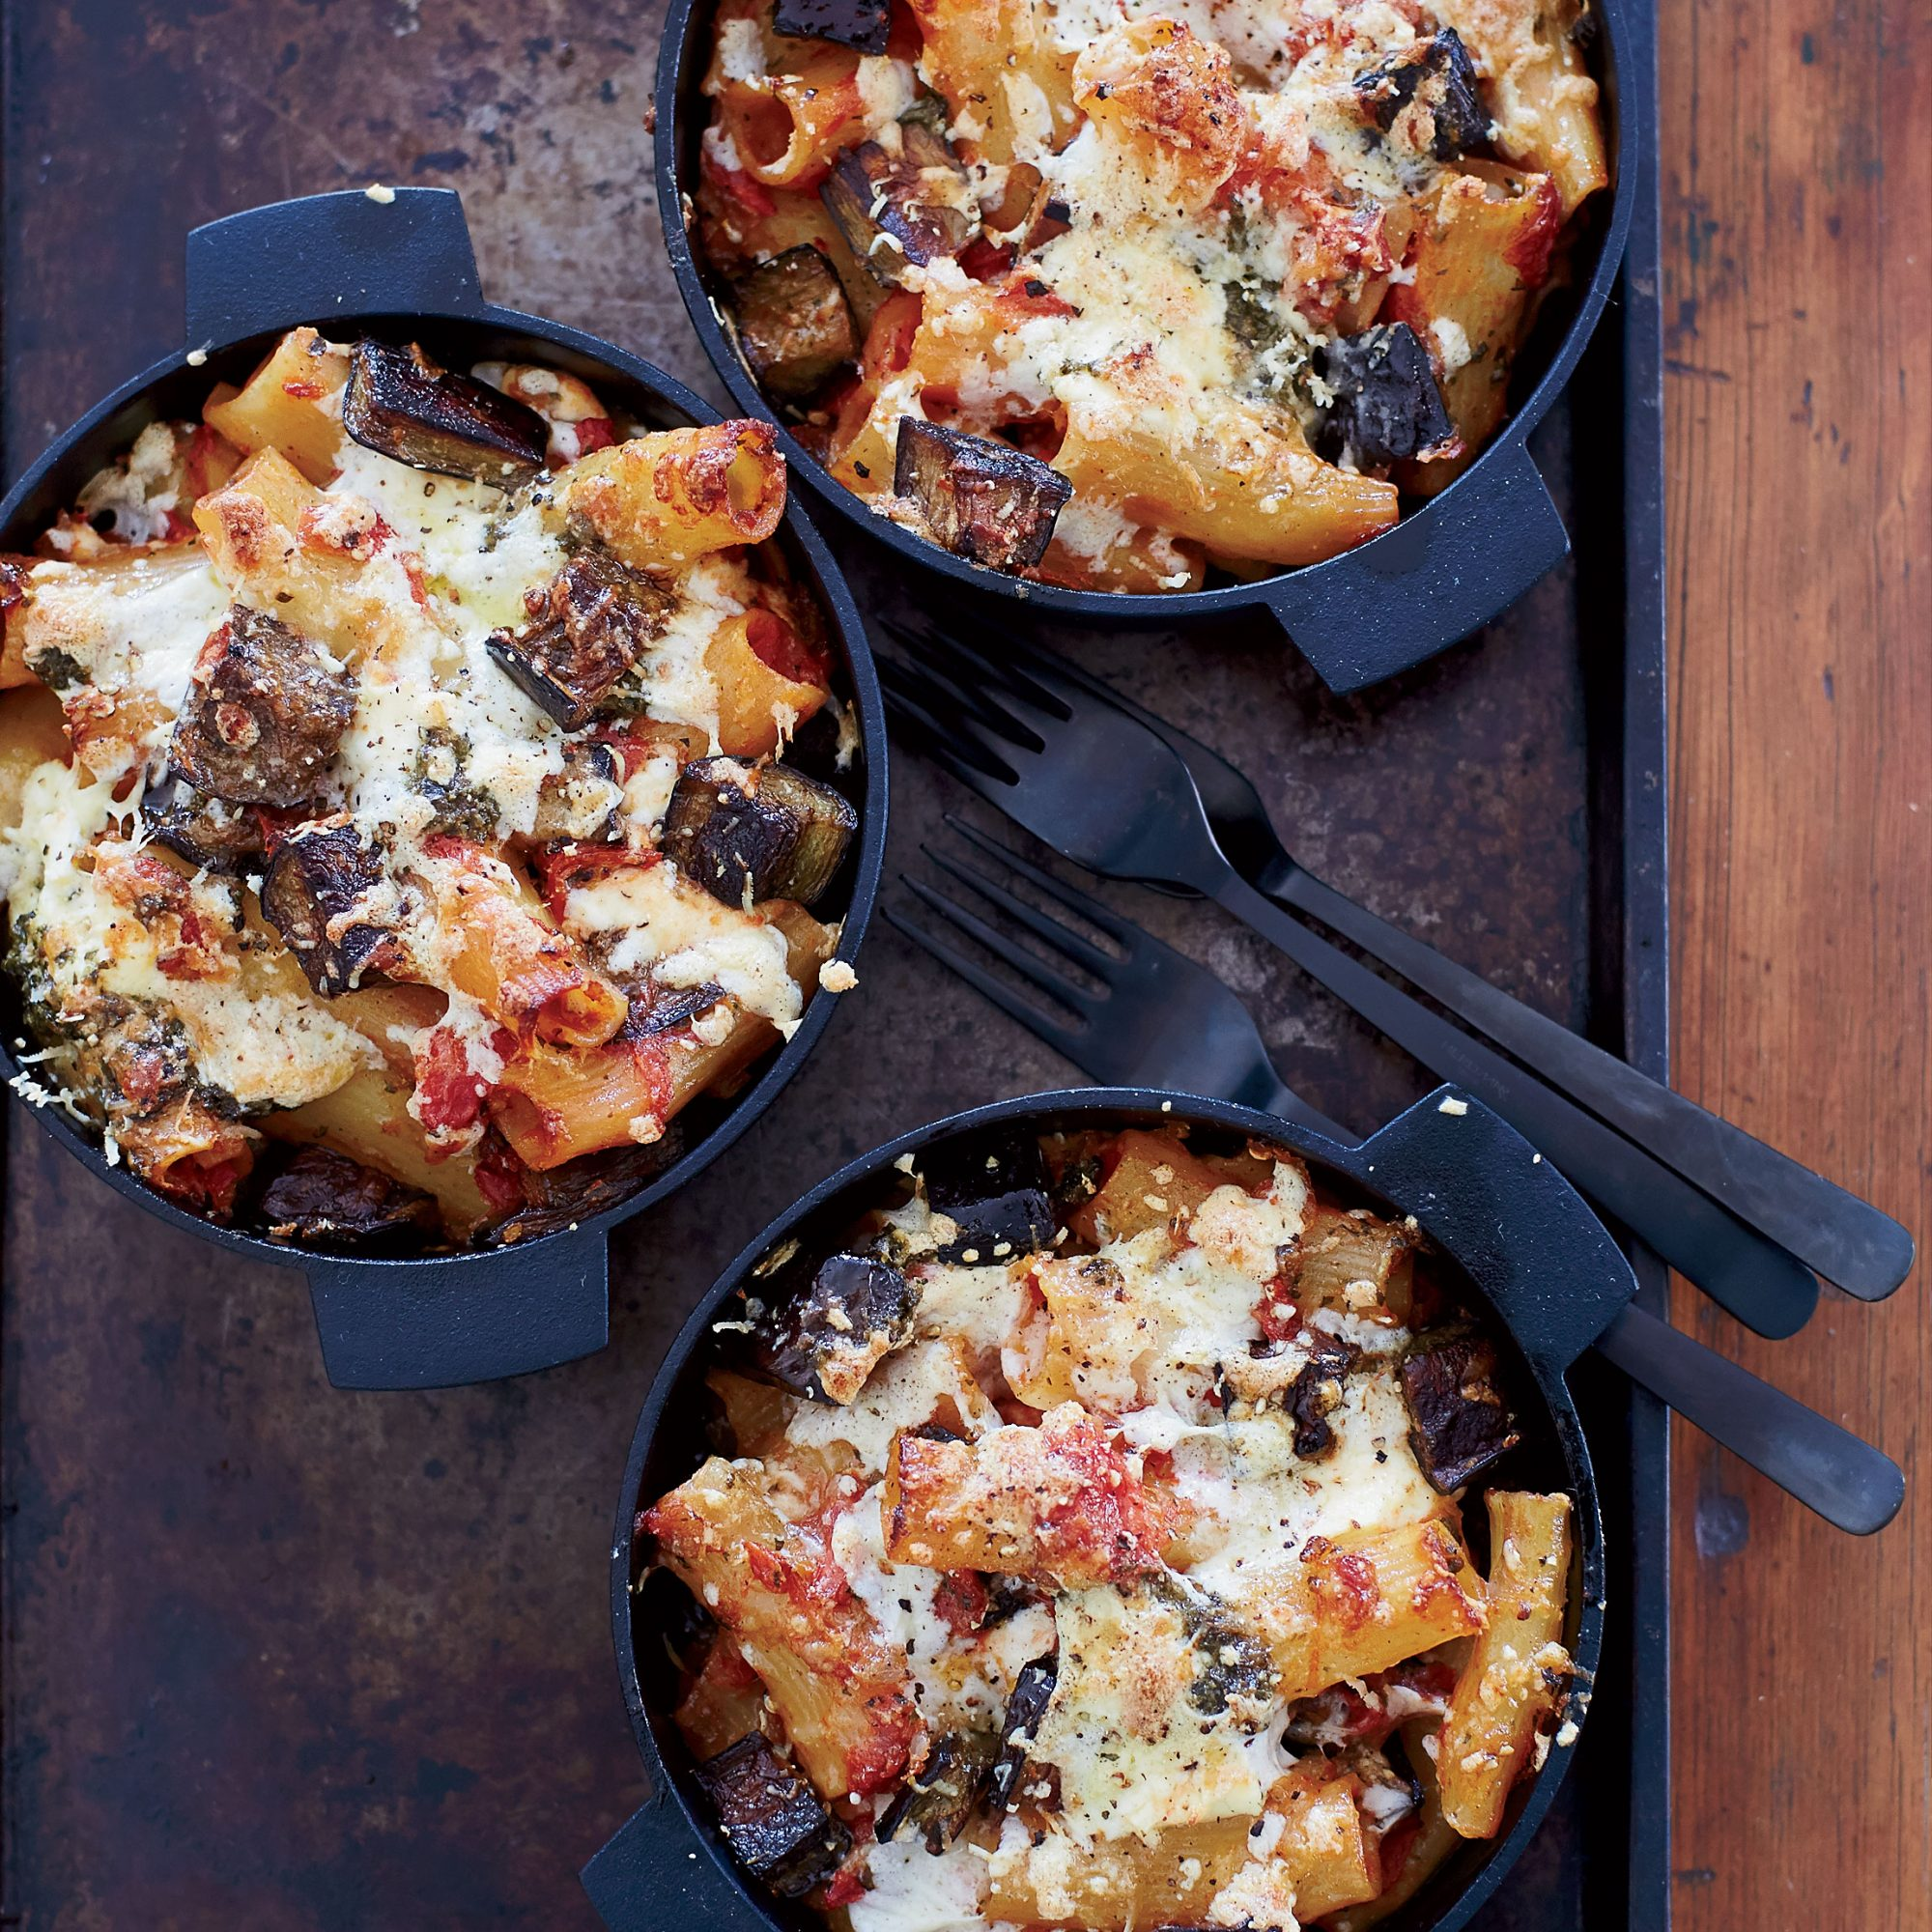 Baked Rigatoni with Eggplant, Tomatoes and Ricotta by Jonathan Waxman